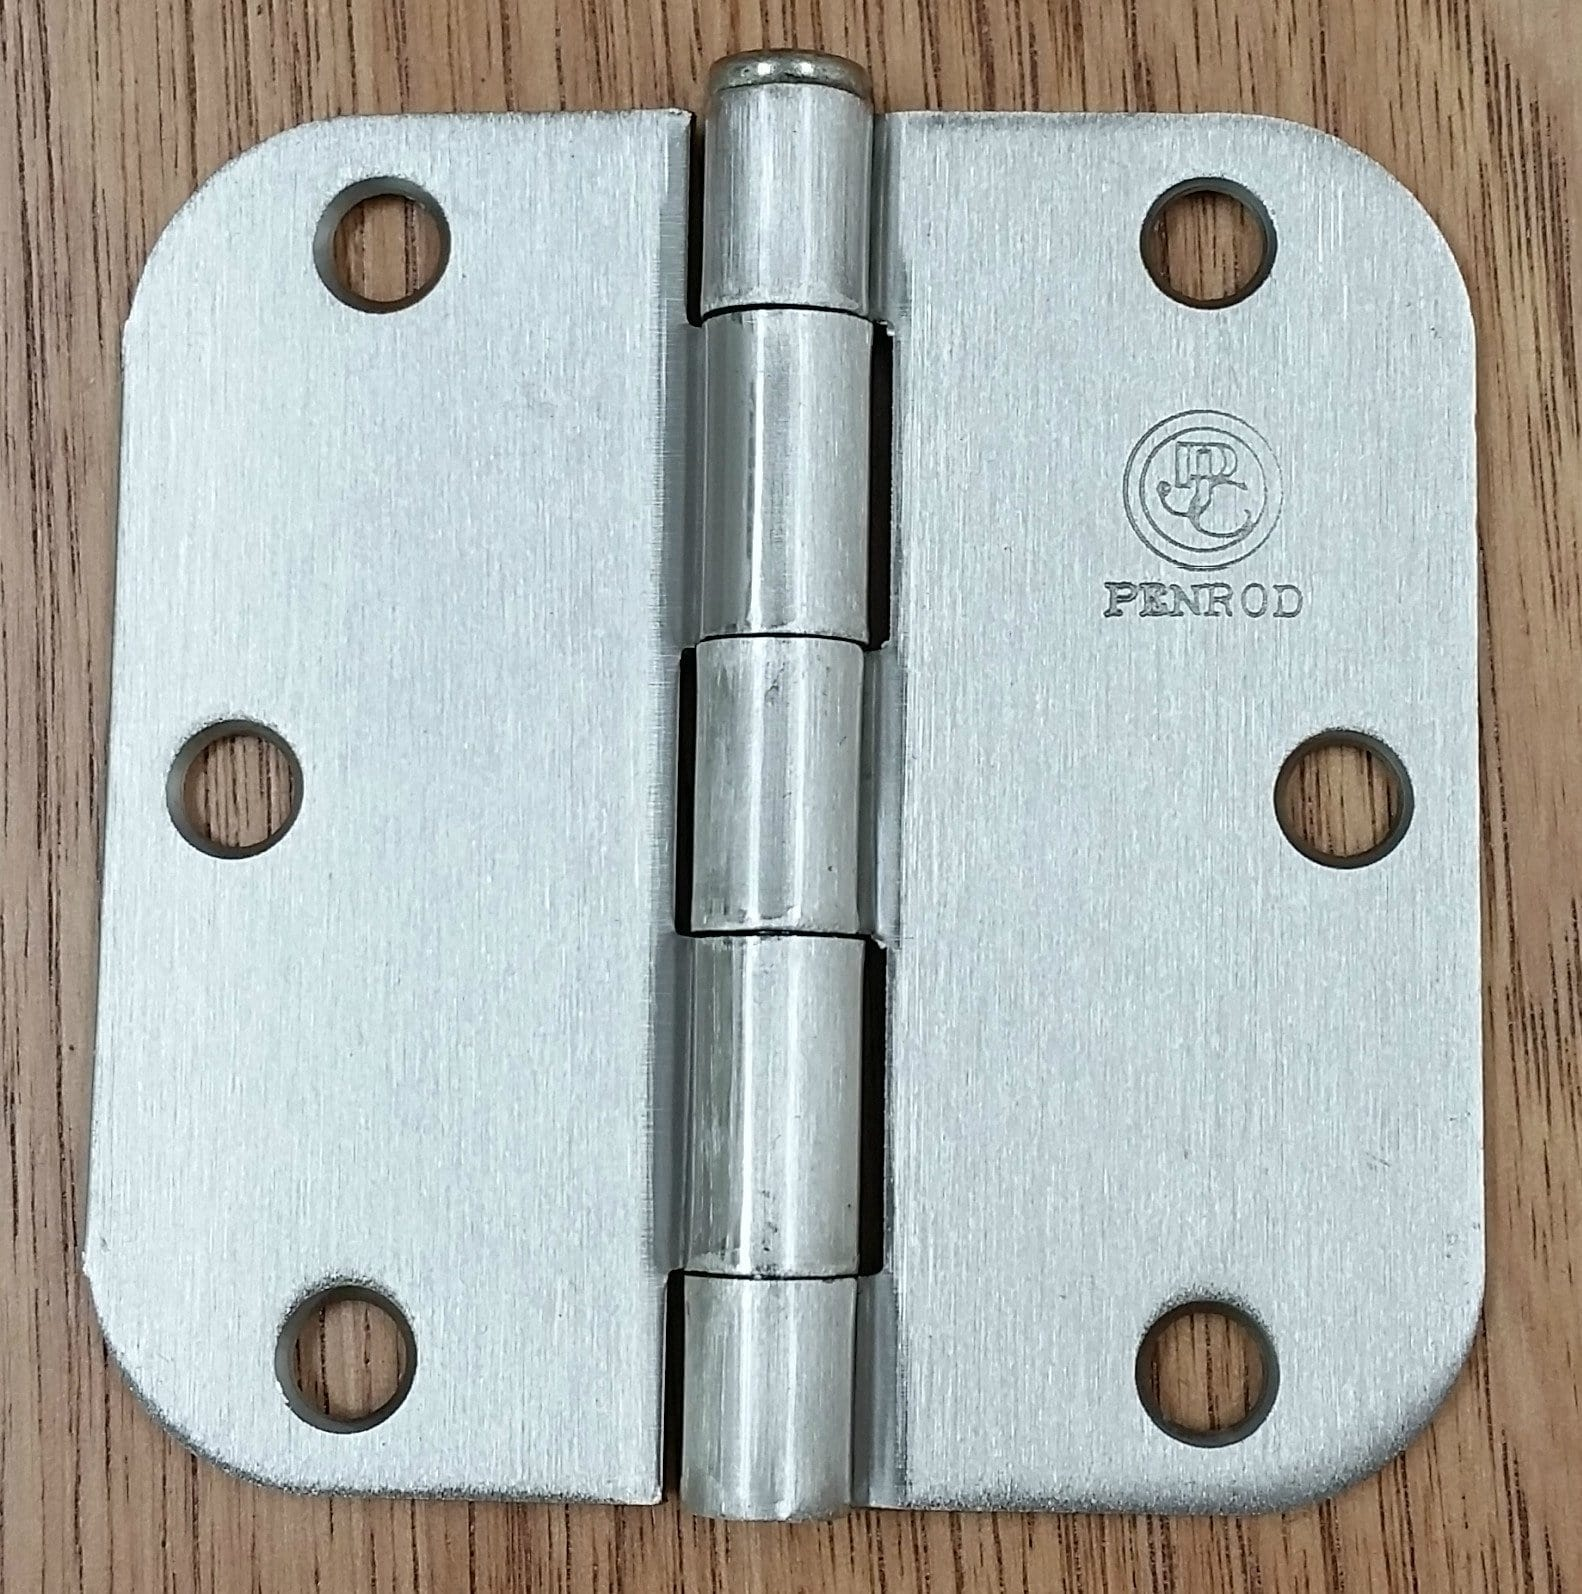 Residential Penrod Butt Hinge - Plain Bearing for Doors - 3 1/2 inch with 5/8 inch Radius Corner - Multiple Finishes Available - 2 Pack